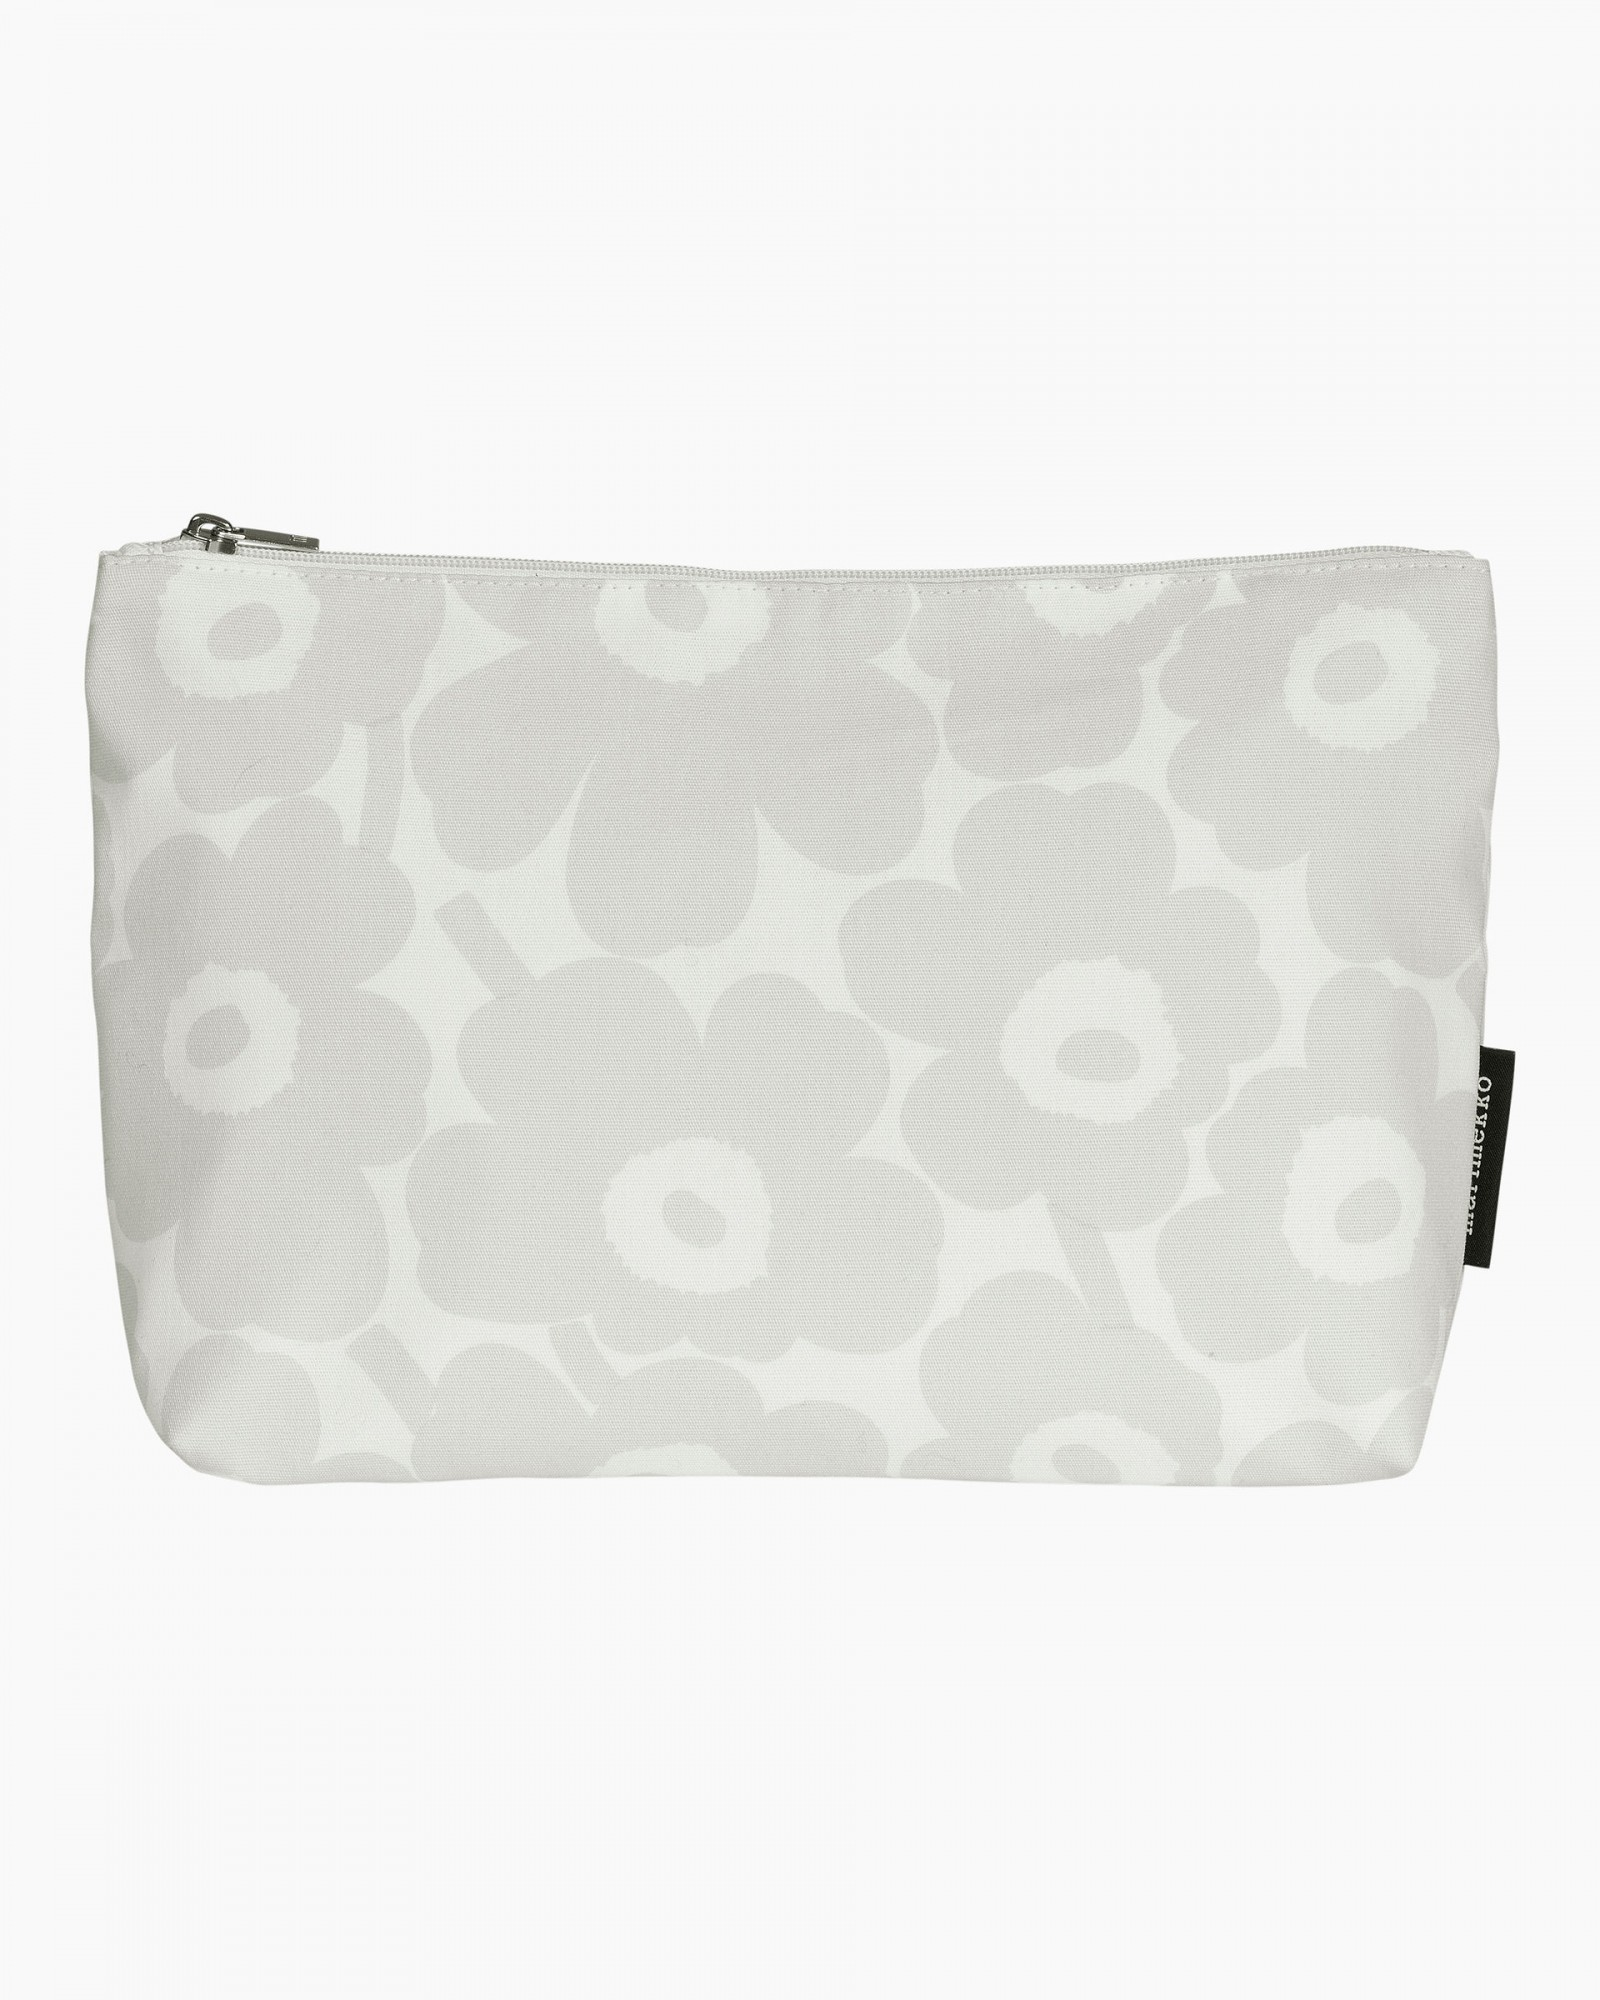 Relle Mini Unikko cosmetic bag white/light grey